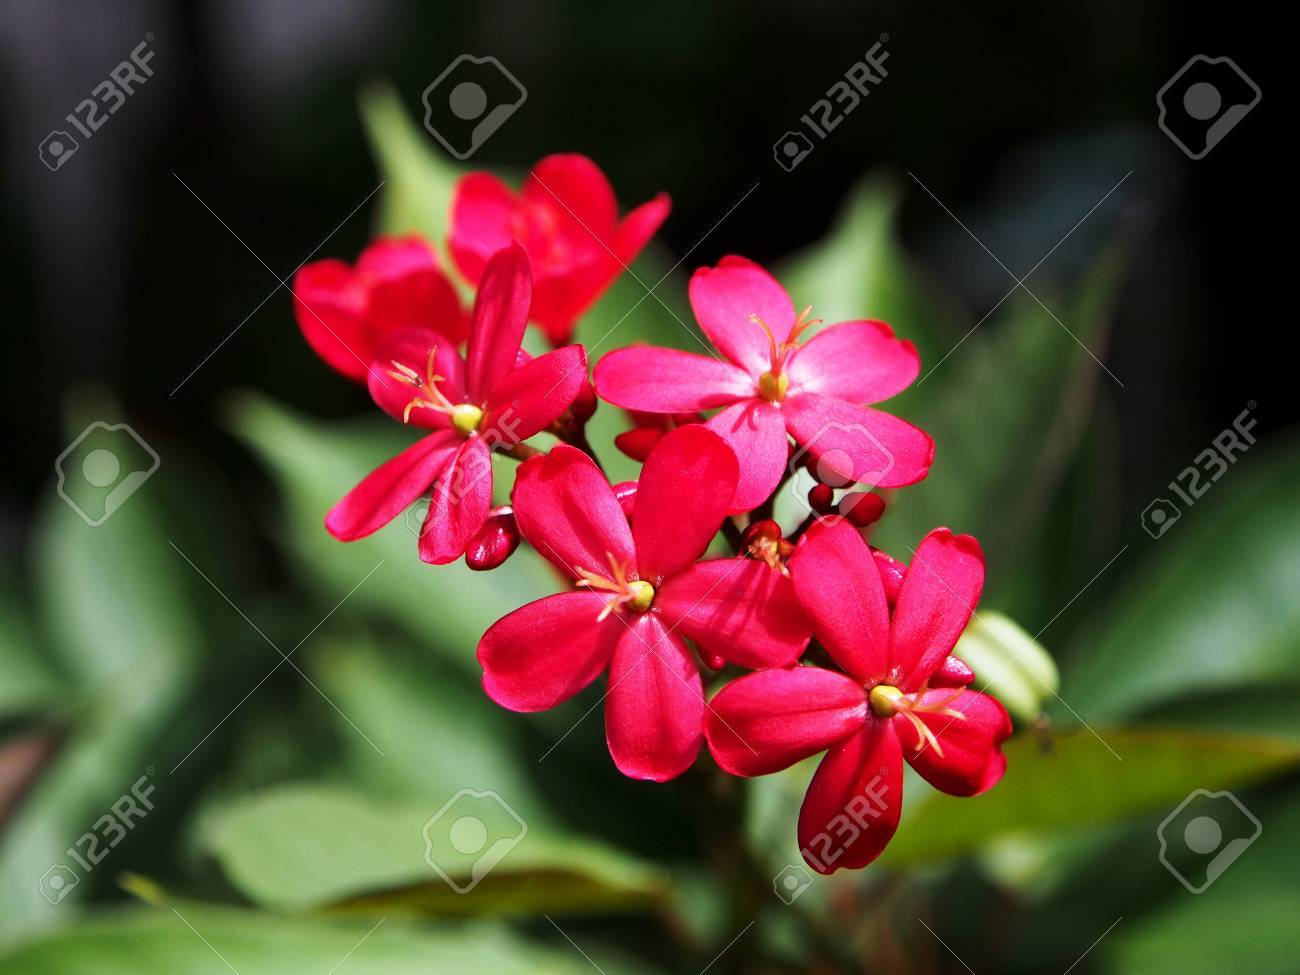 Deep pink flowers stock photo picture and royalty free image image deep pink flowers stock photo 37670390 mightylinksfo Image collections